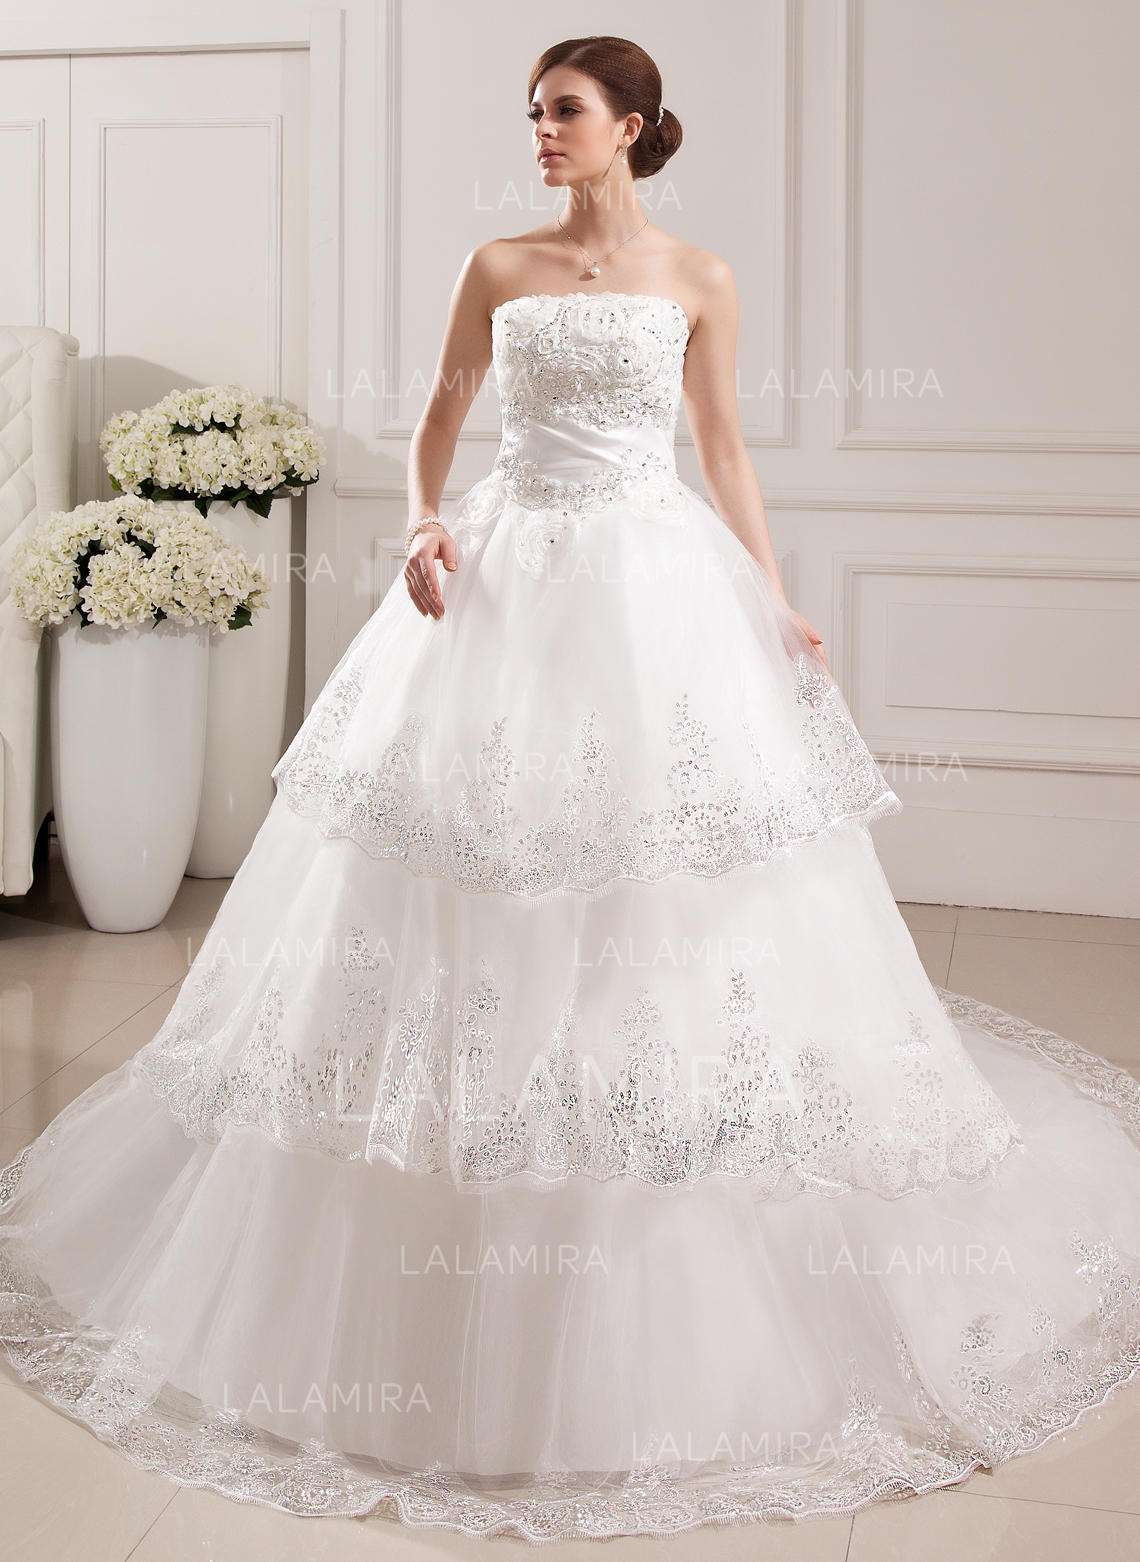 lace beading flower(s) sleeveless strapless tulle ball-gown wedding dresses